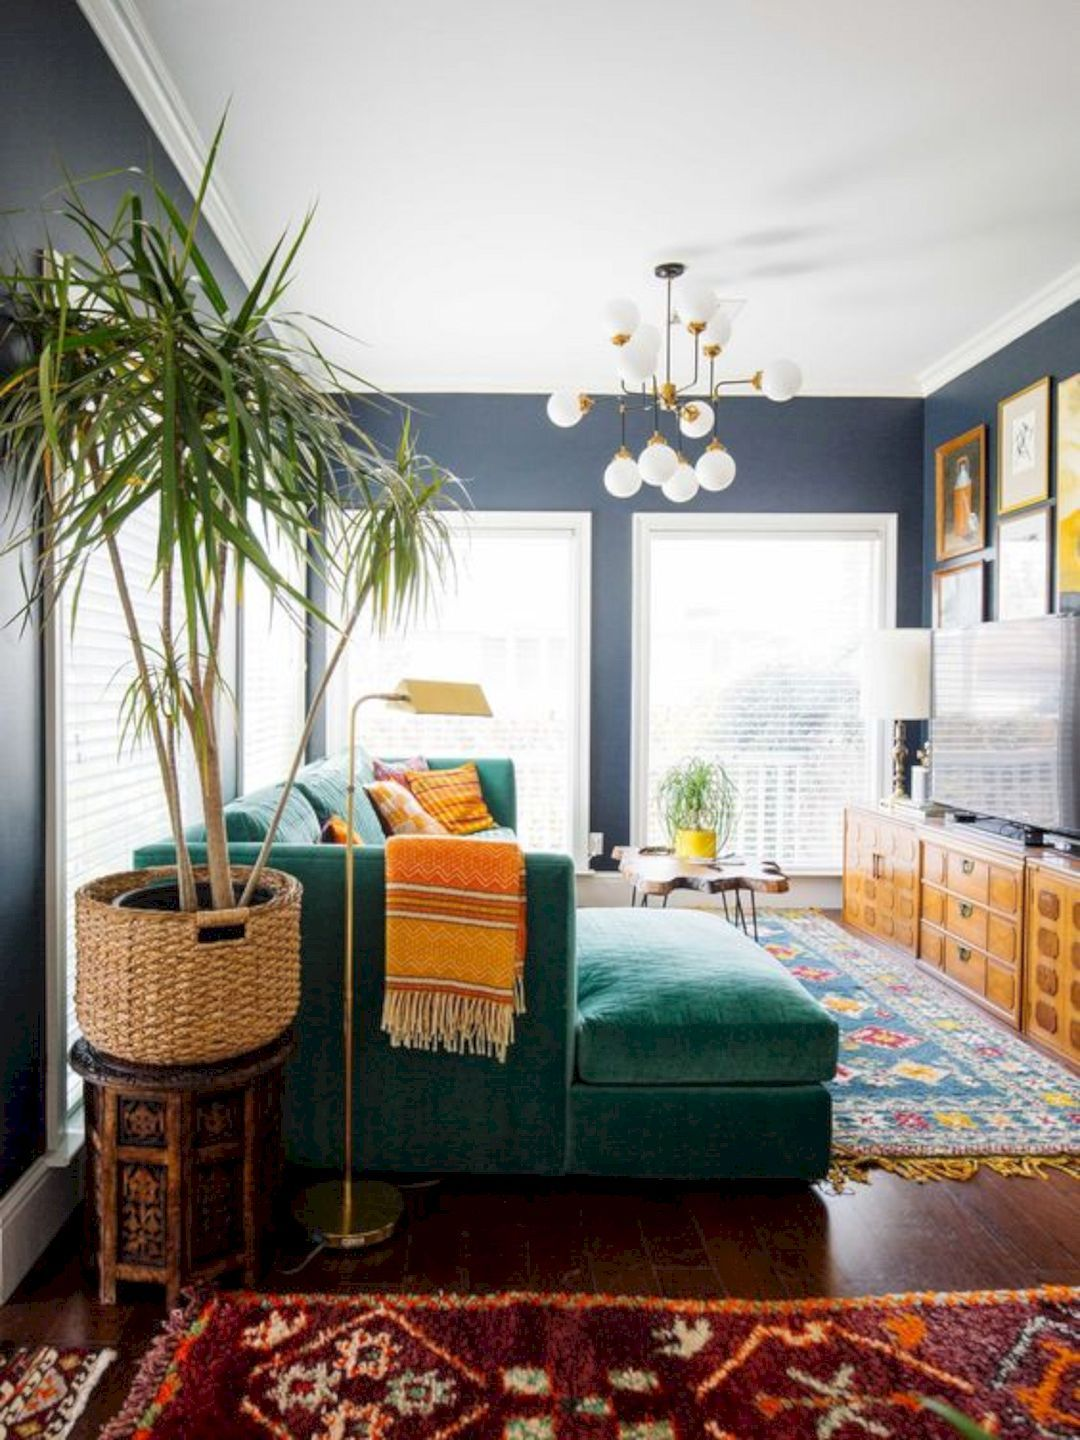 16 inspiring room decoration ideas to bring out eclectic feels at home https